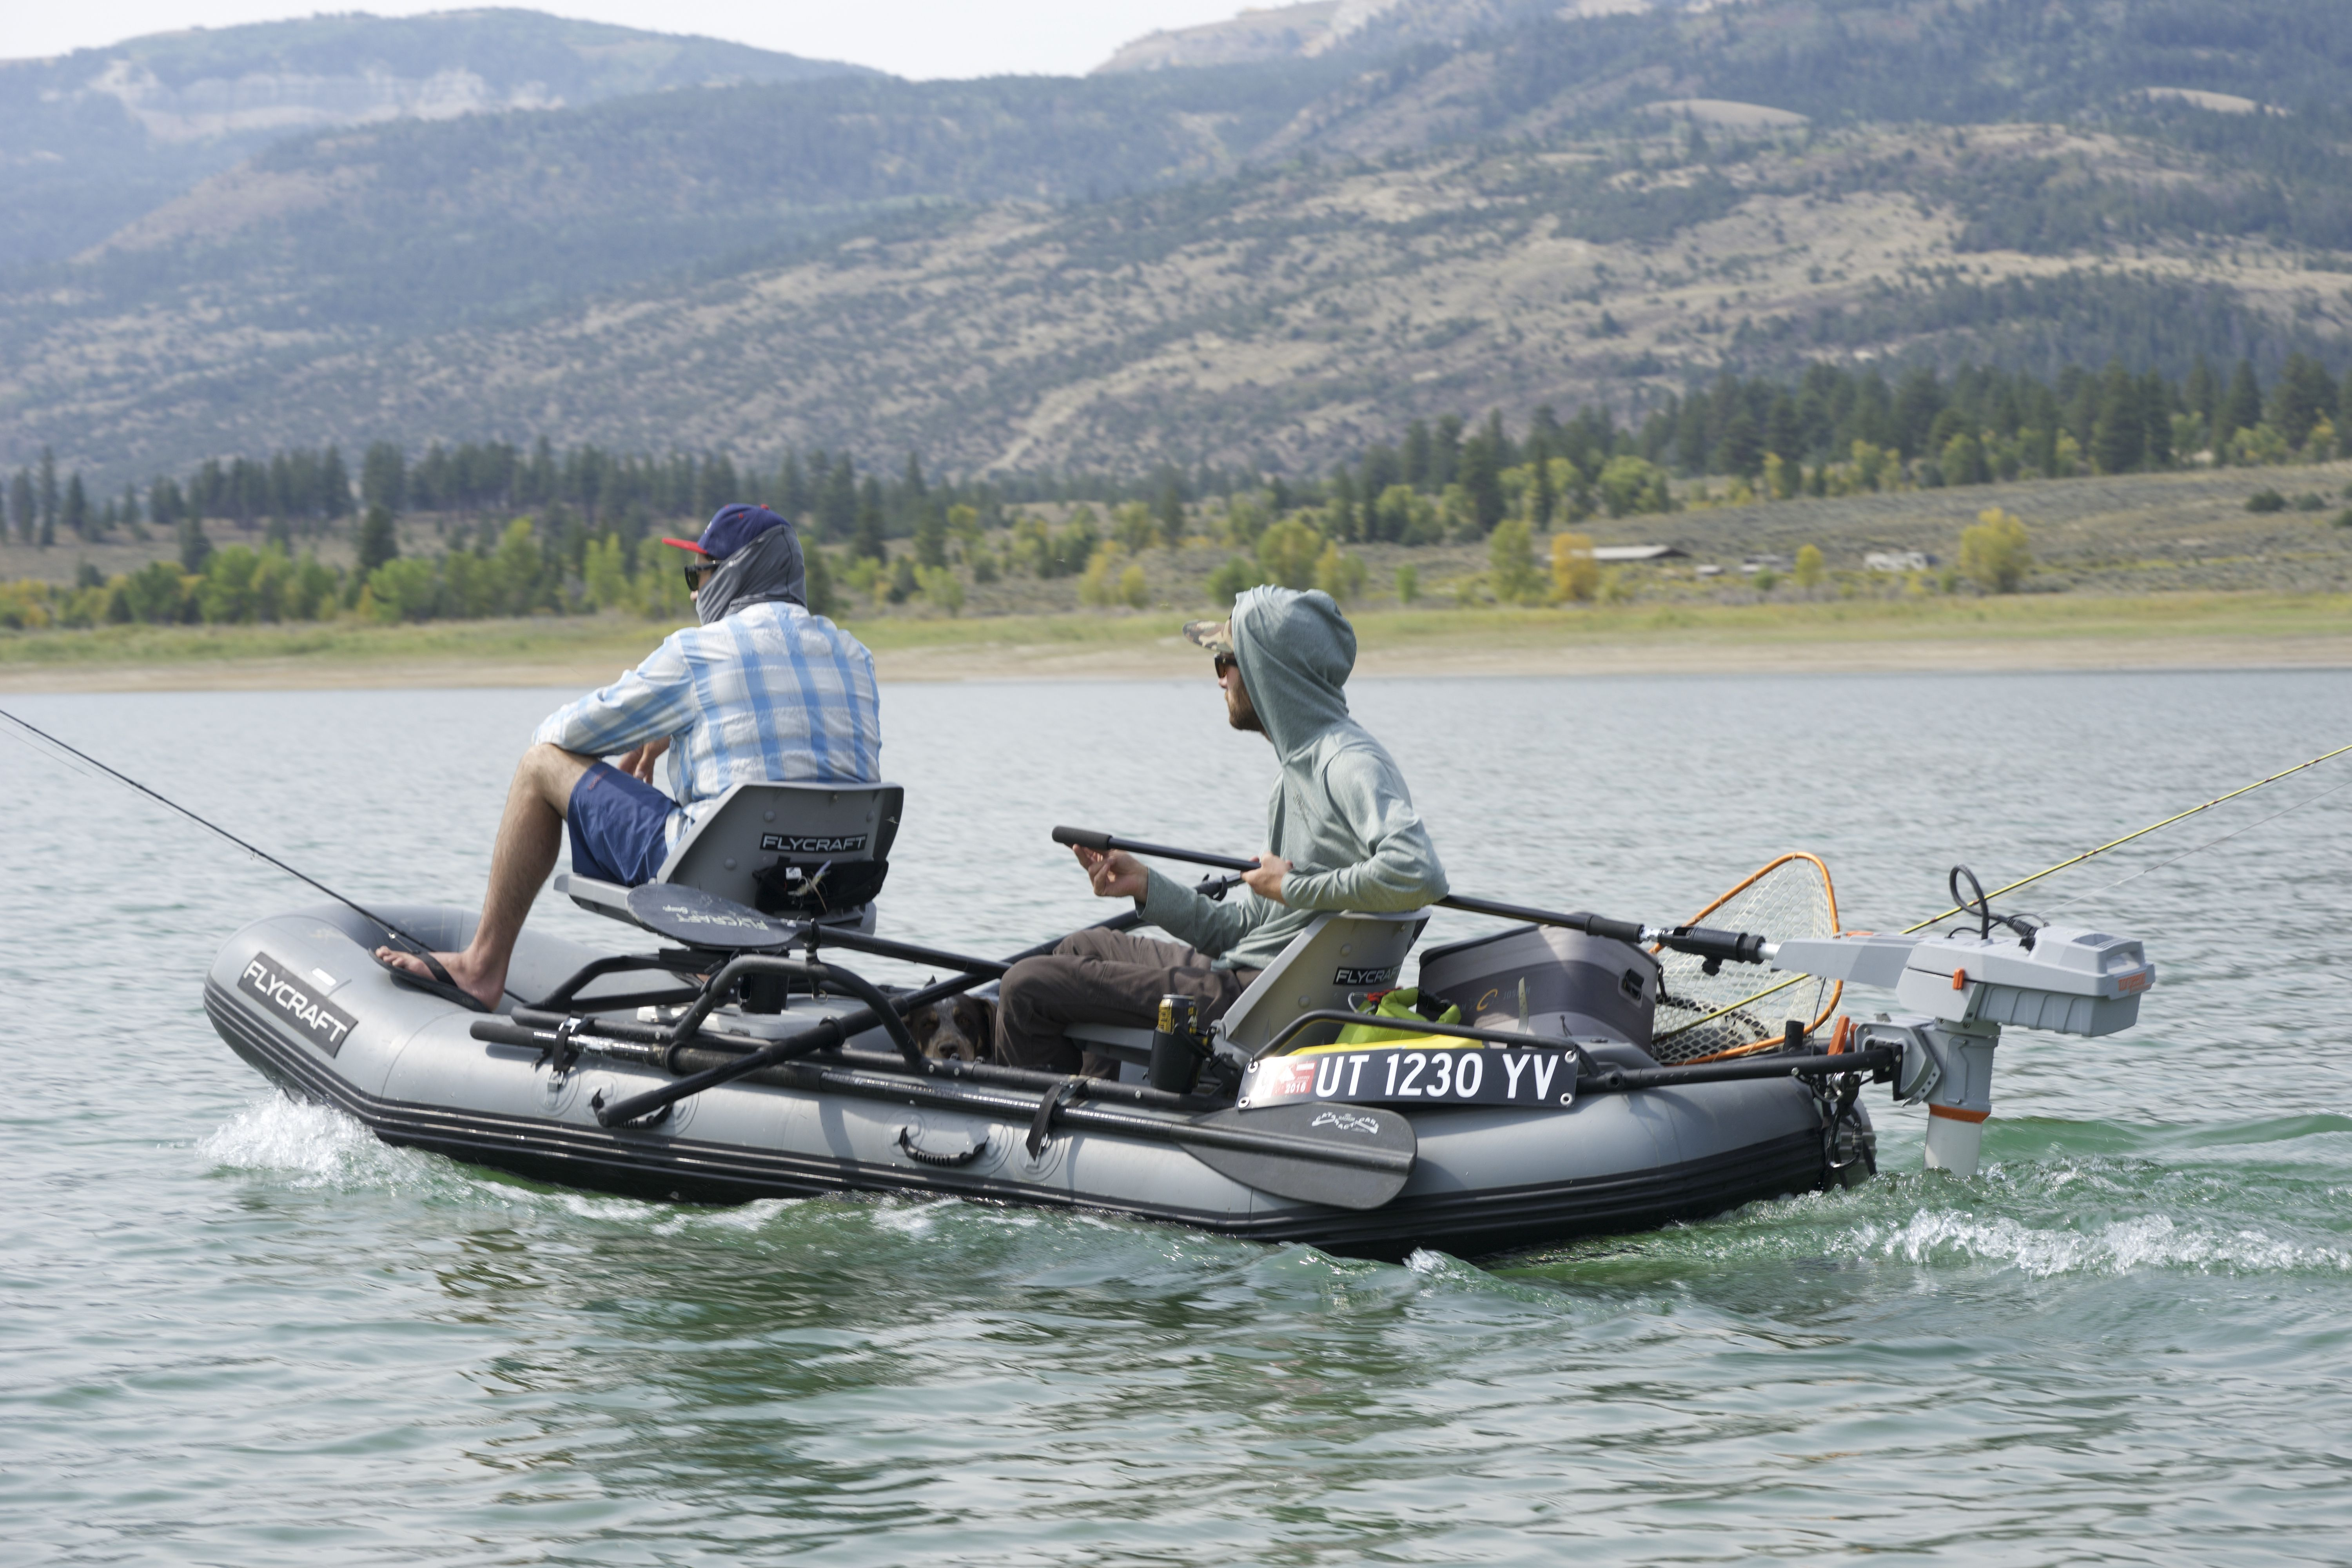 easily attach an outboard motor to the flycraft to access big bodies